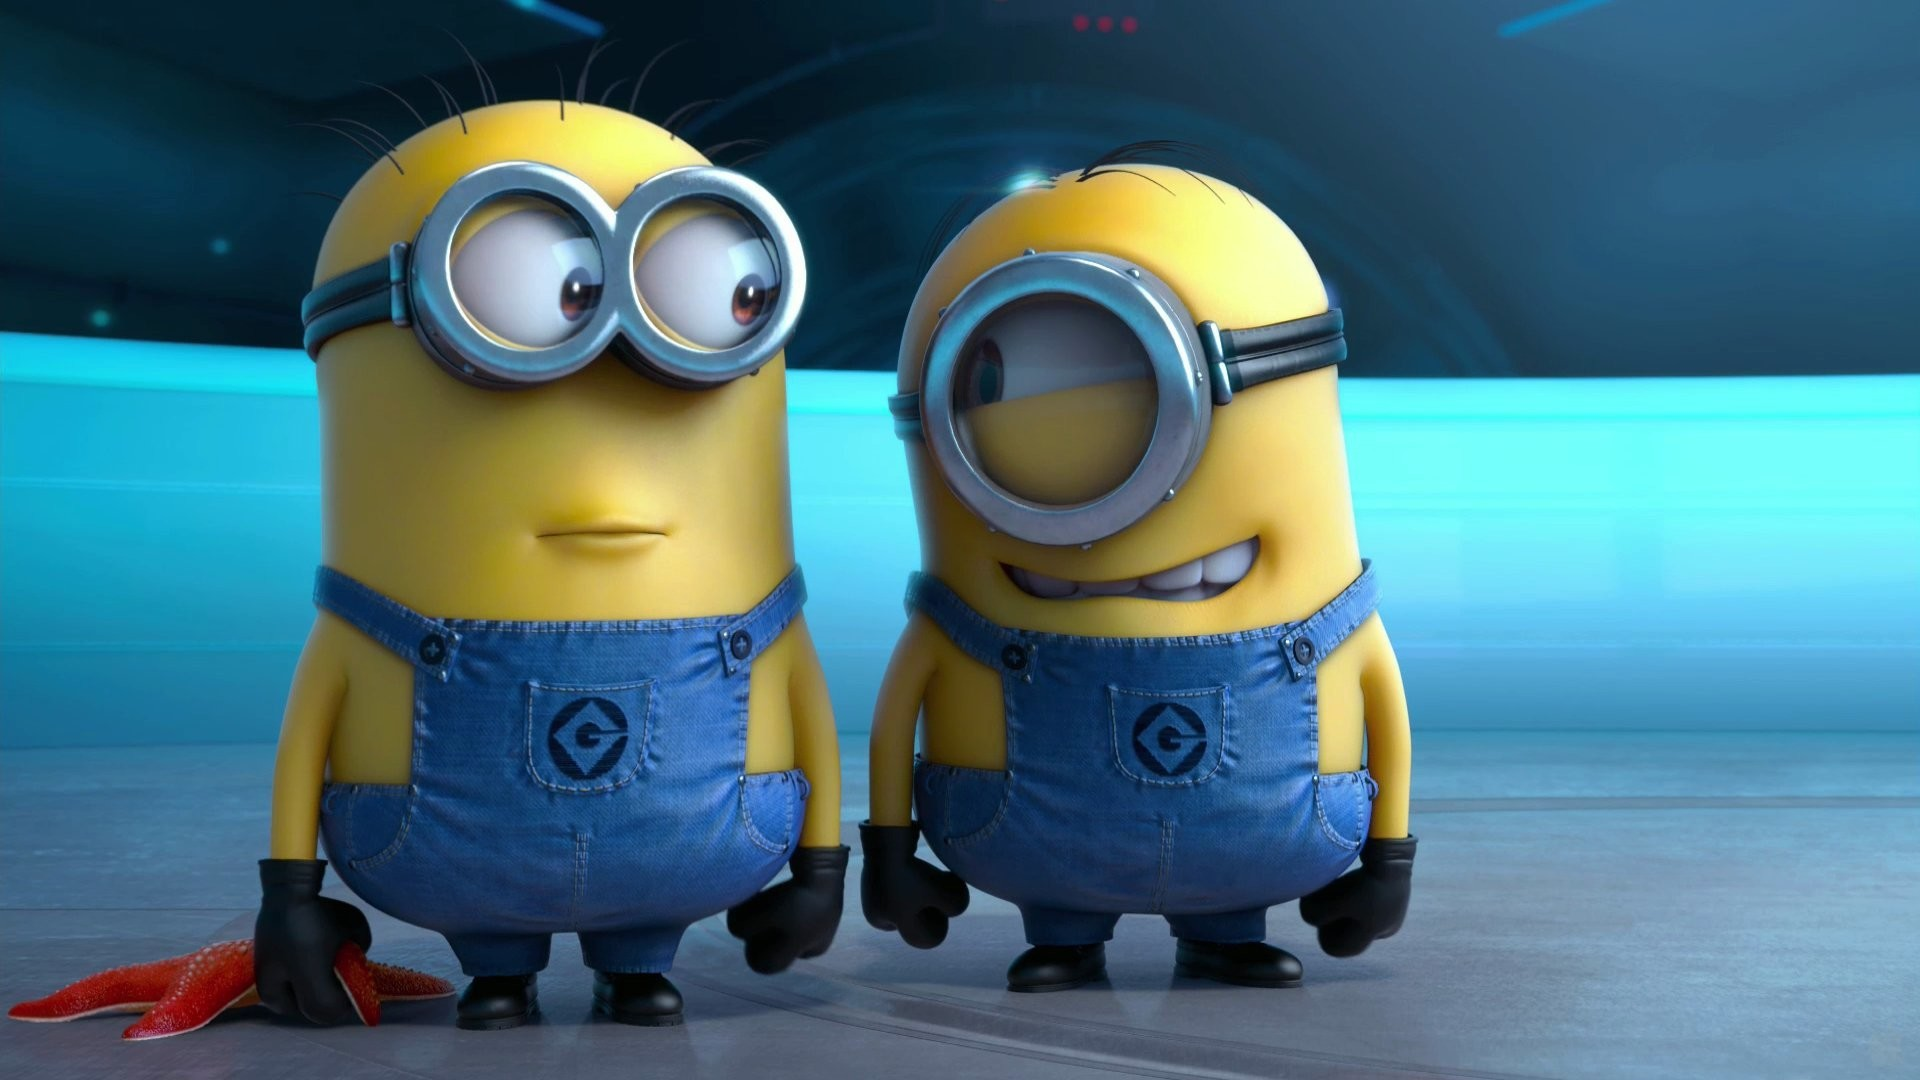 Res: 1920x1080, Despicable Me 2 Minions Wallpaper 2880x1800